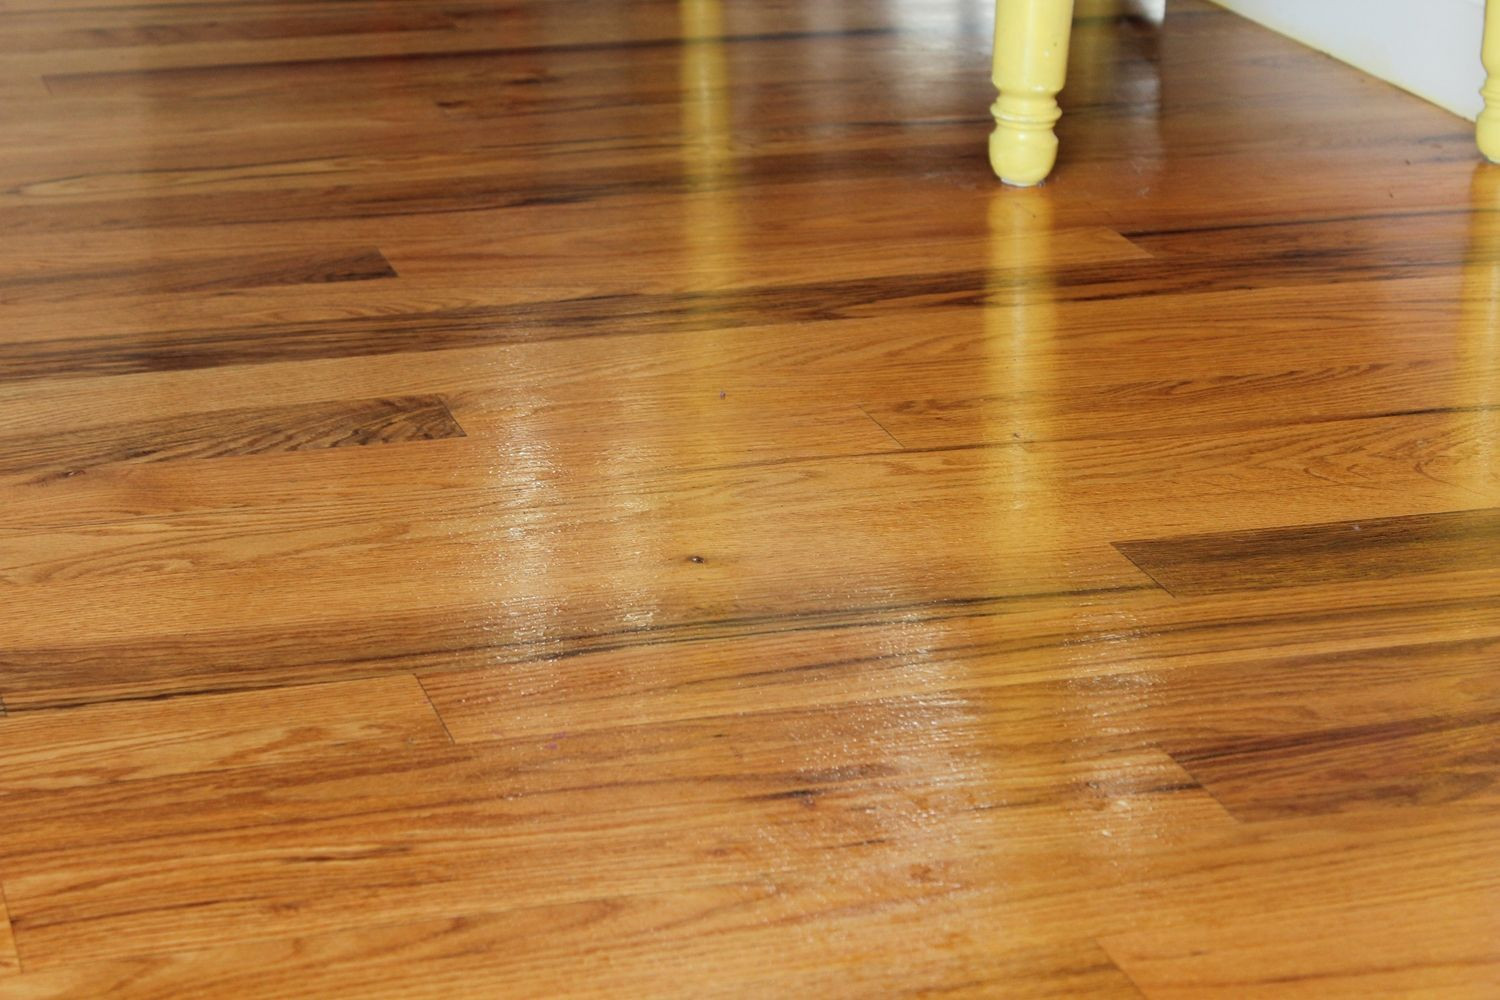 Best ideas about DIY Wood Floors . Save or Pin DIY Natural Wood Floor Polishing Cleaner Now.